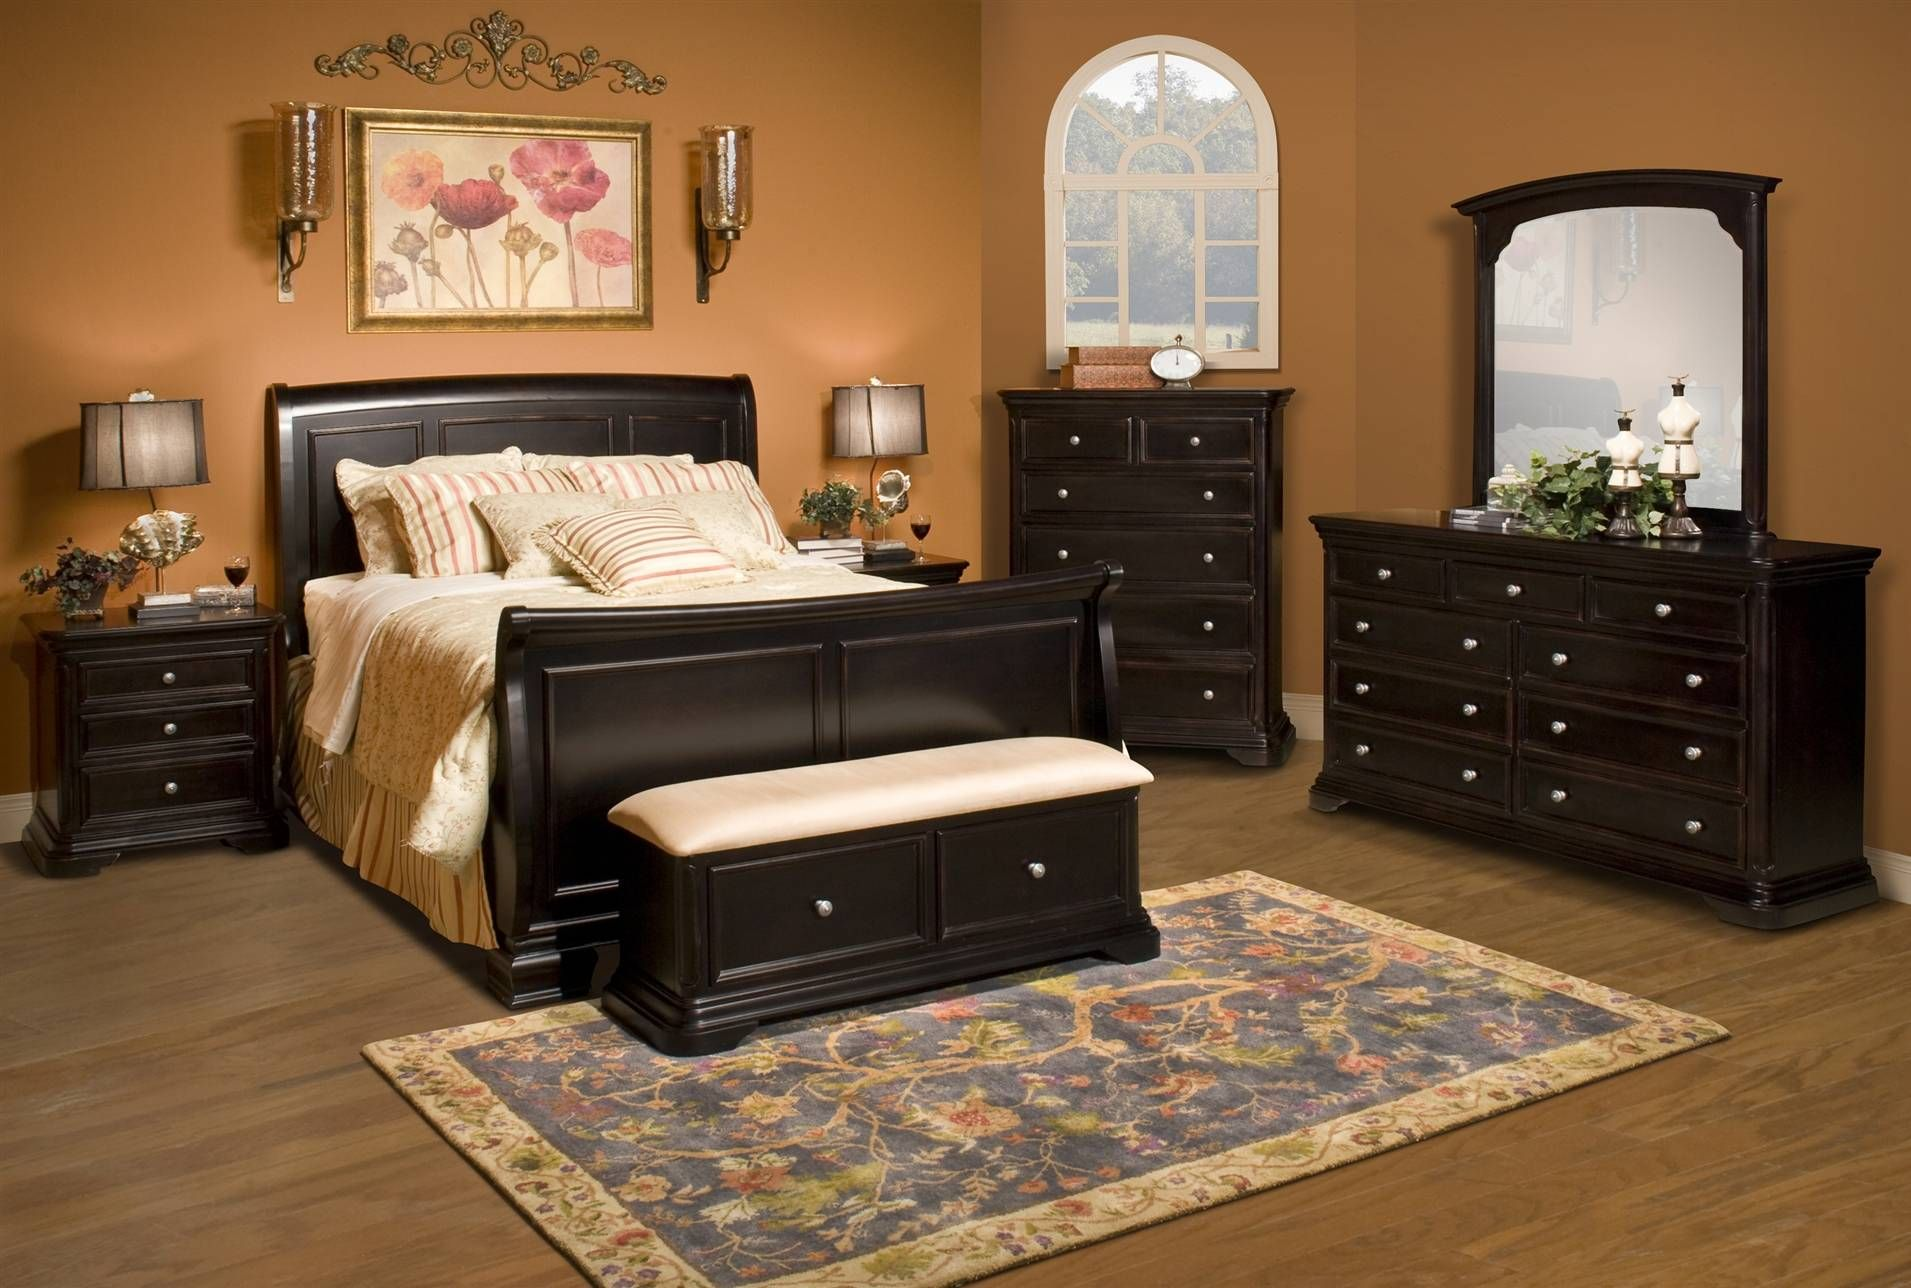 Mary Hill Queen Sleigh Bed. Mary Hill Queen Sleigh Bed   For the Old Home   Pinterest   Living